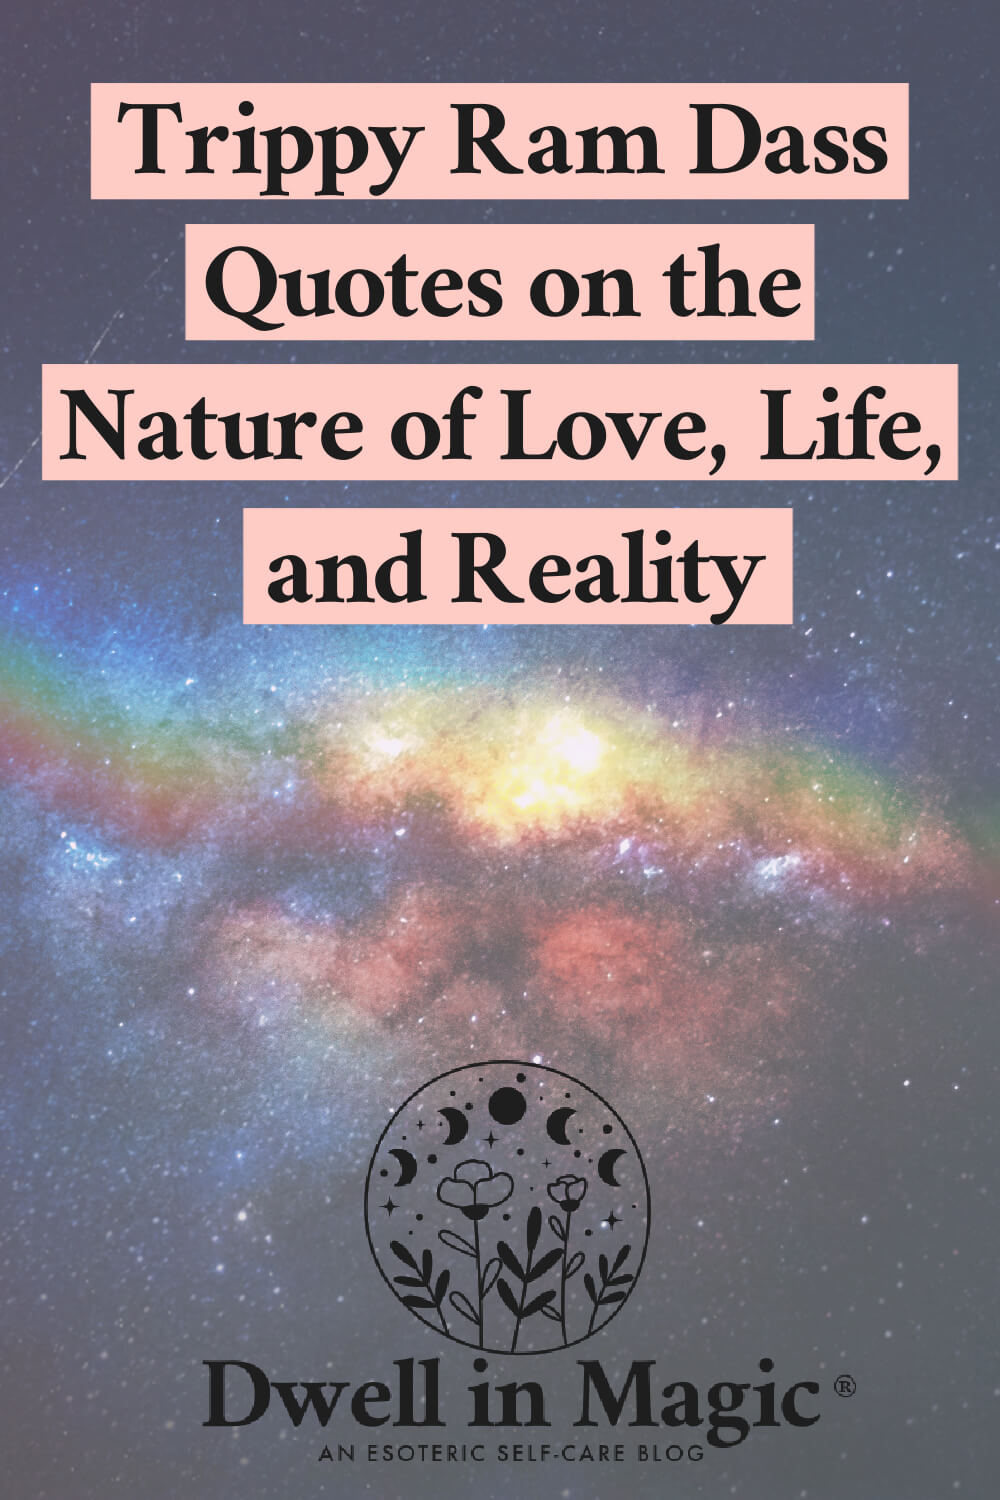 Ram Dass quotes on the nature of love, life and reality